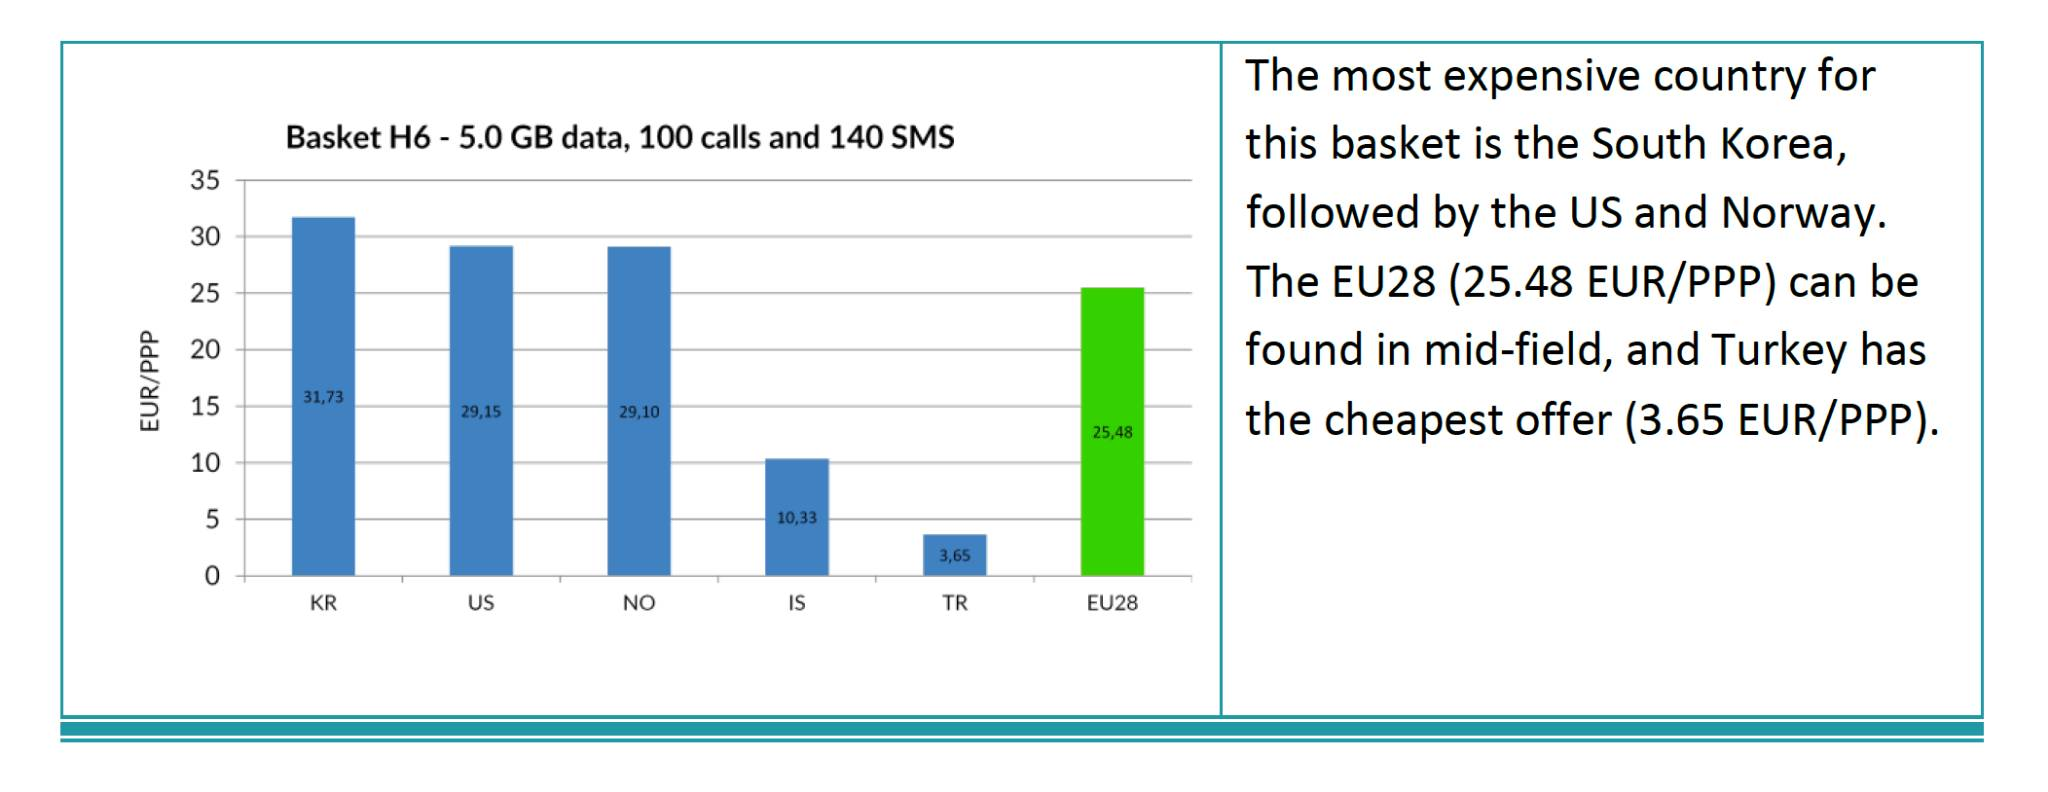 mobile-broadband-prices-in-europe-2018-21000